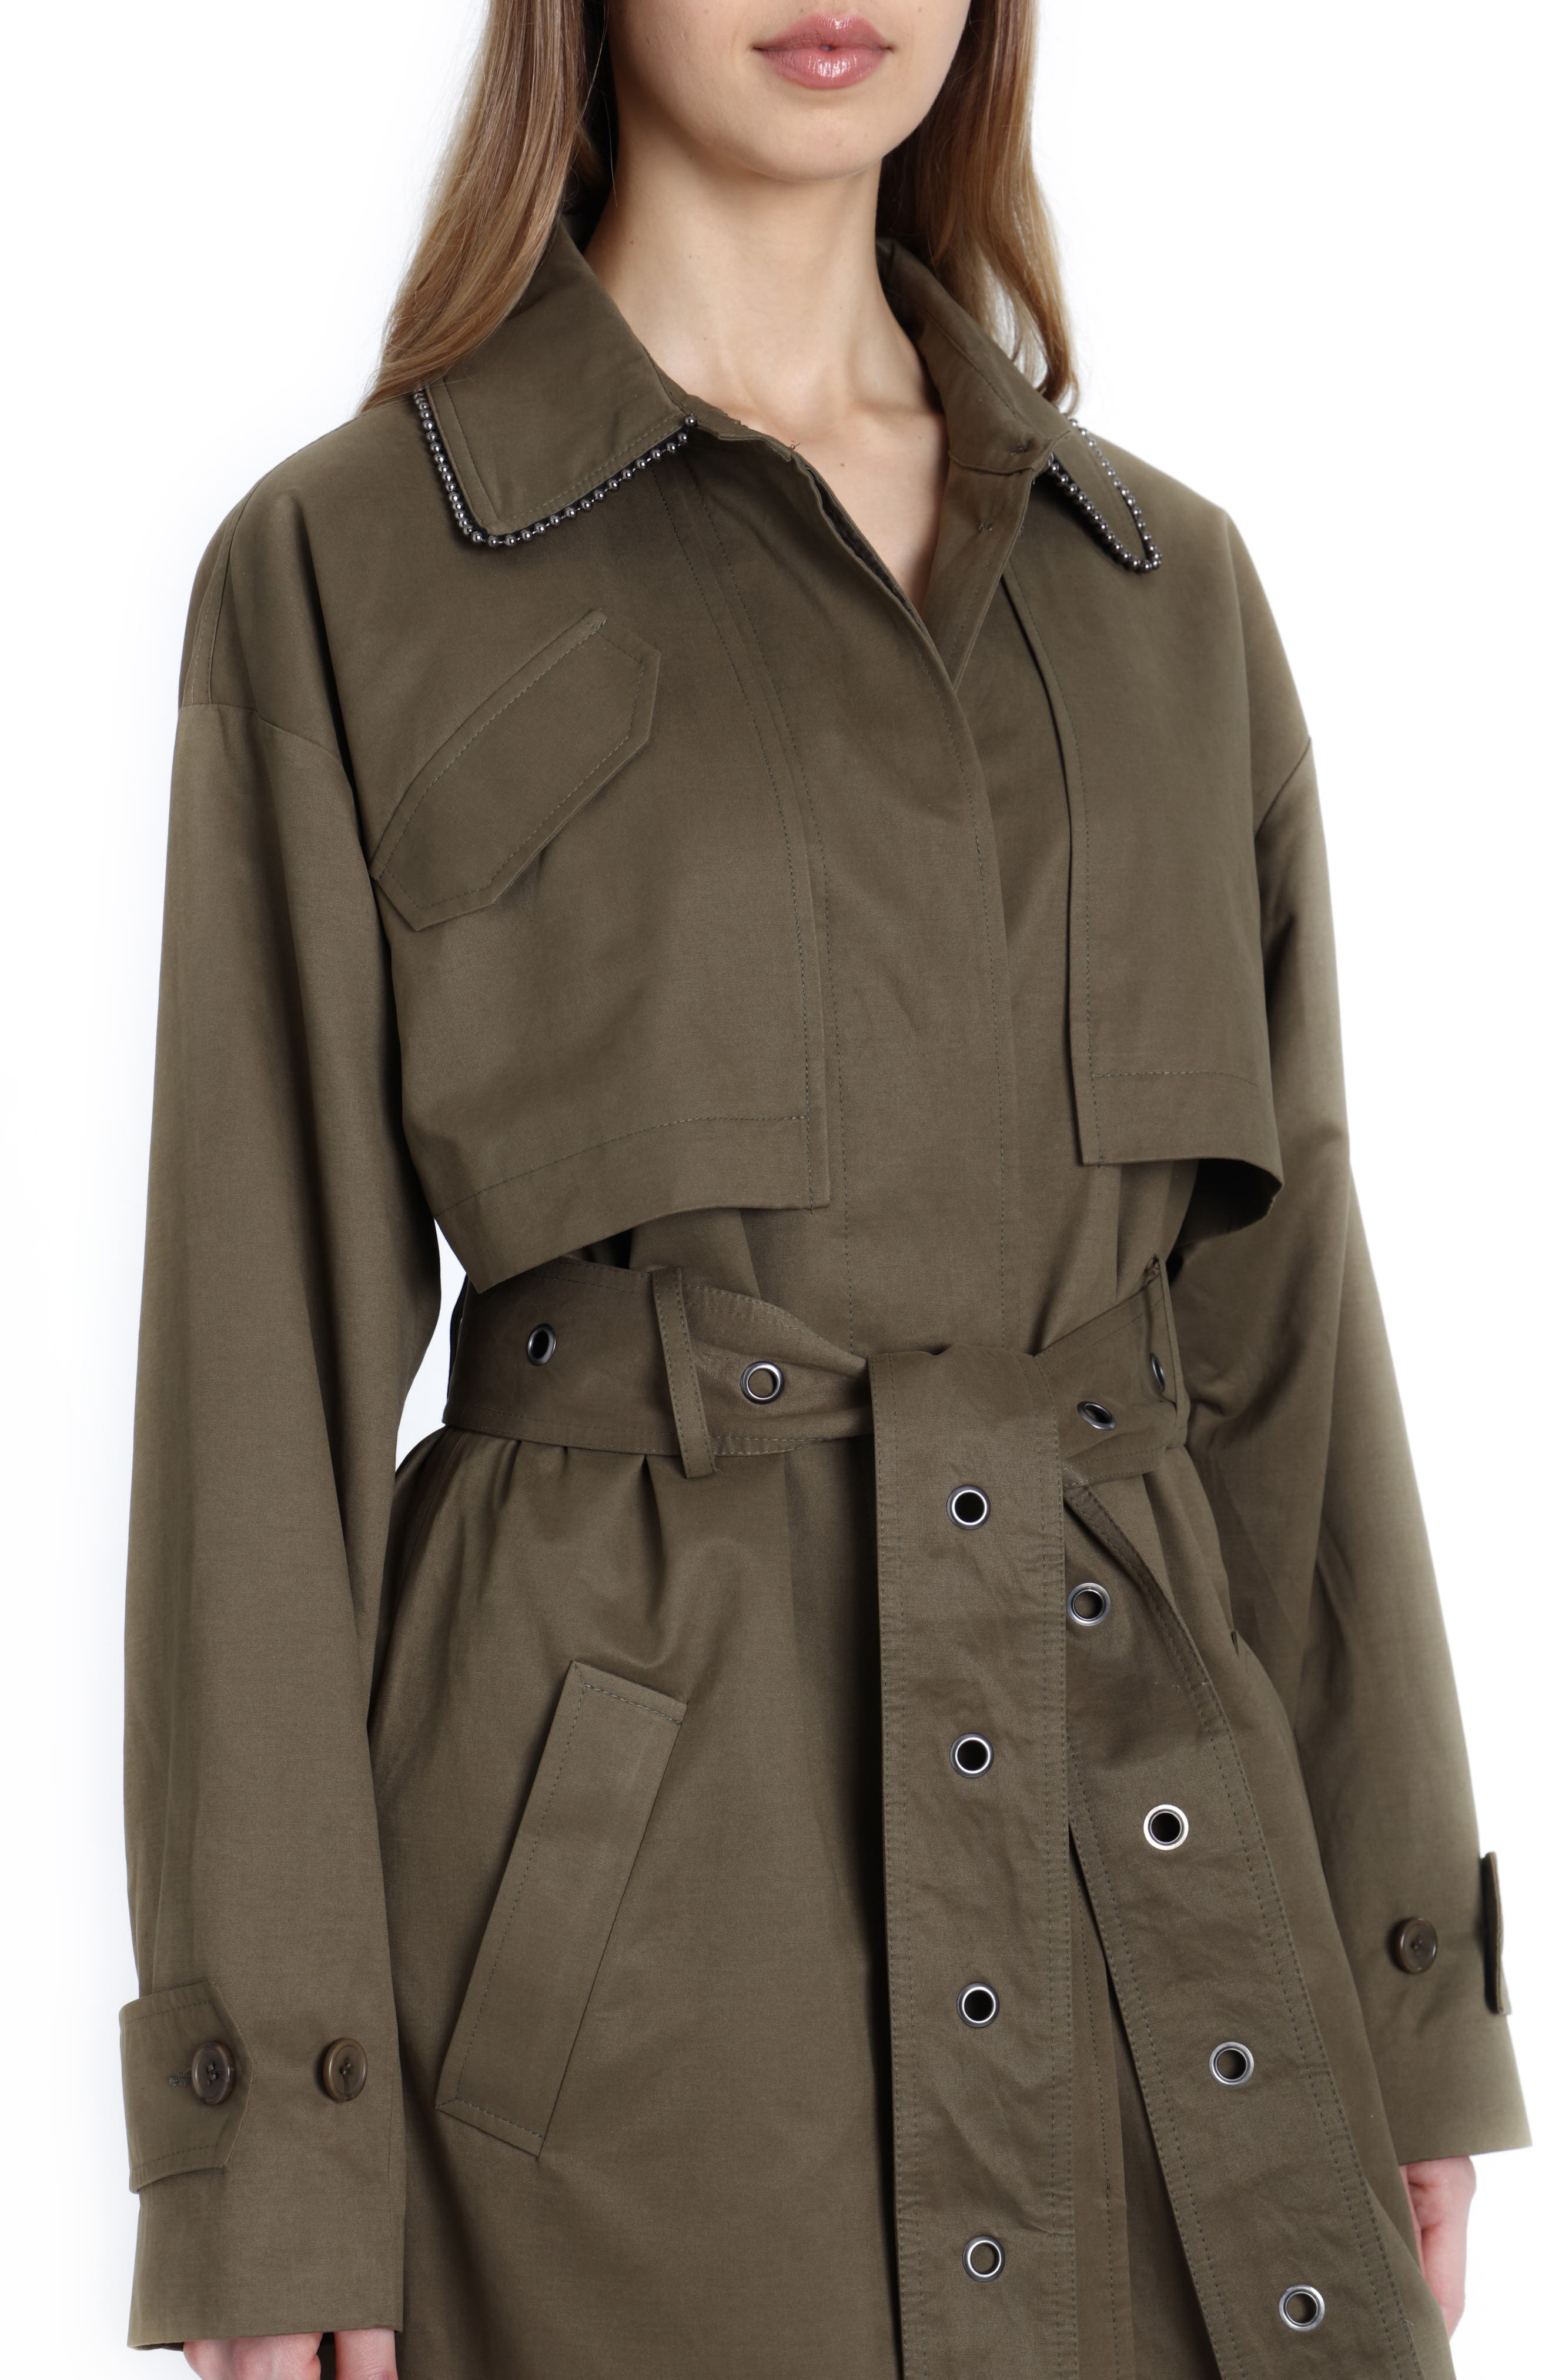 Badgley Mischka Cotton Blend Utility Trench Coat,                             Alternate thumbnail 4, color,                             301